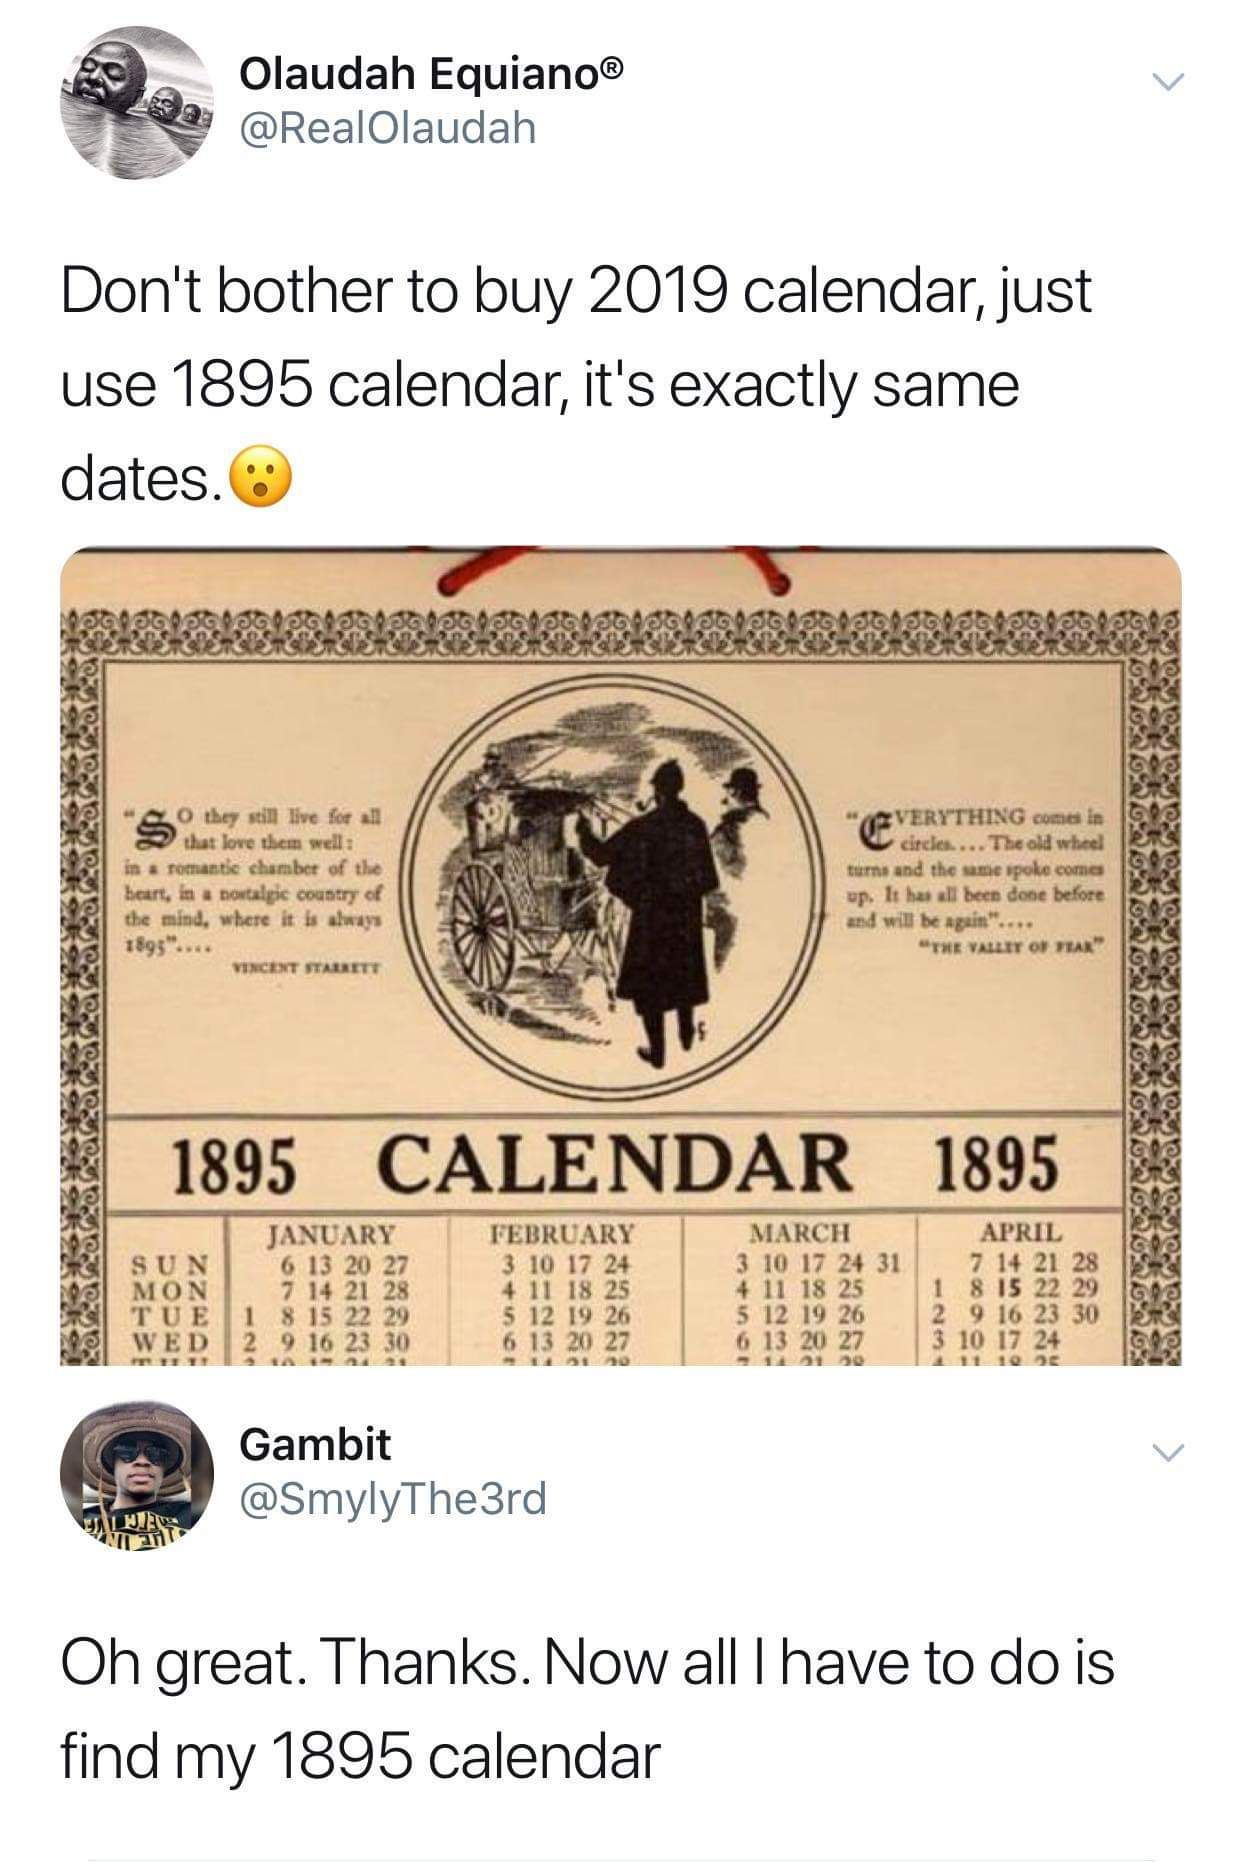 Just Use The 1895 Calendar Funny Memes Video Gifs Pics Lol Interesting Funny Relatable Memes Funny Haha Funny